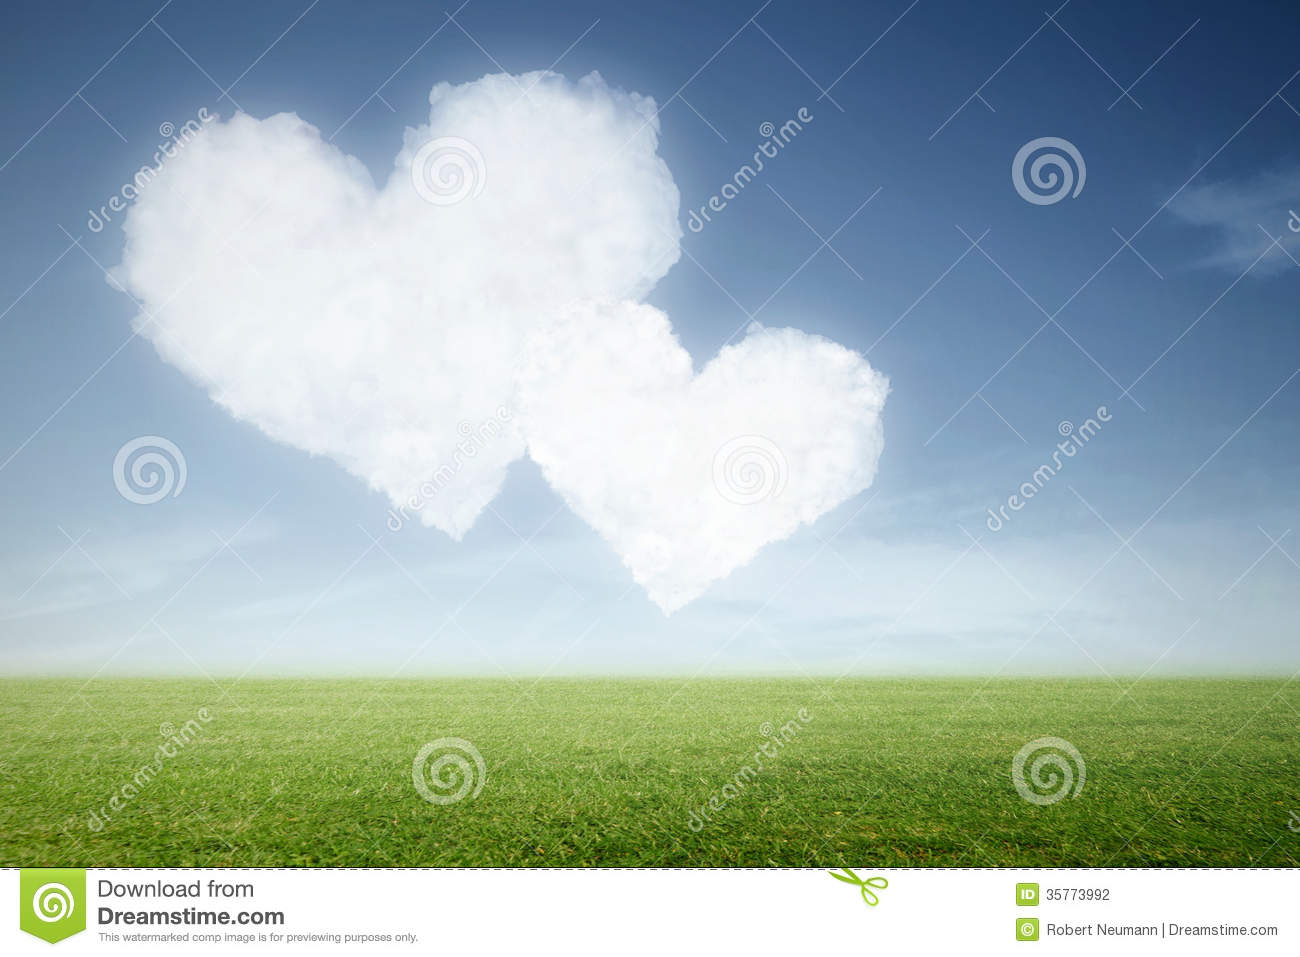 two clouds in heart shape in the sky stock photo - image of